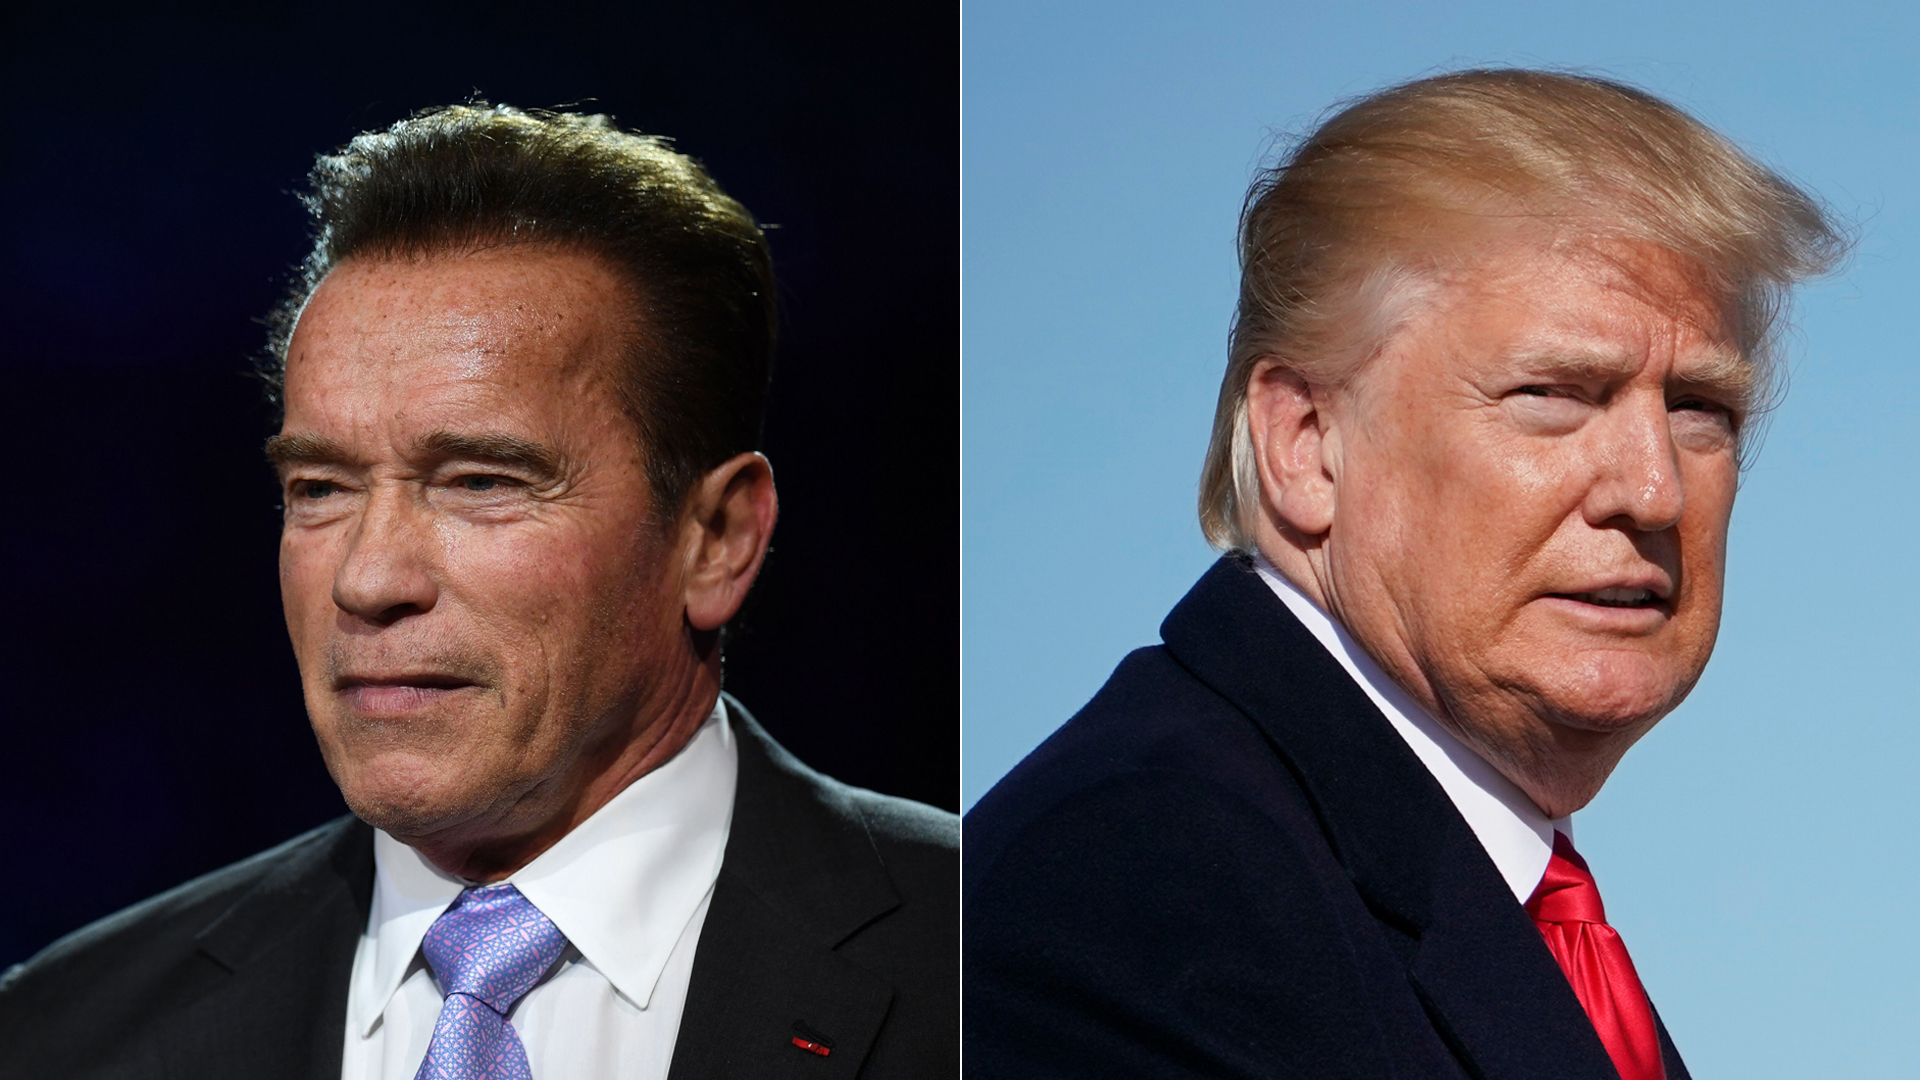 Left, former California Gov. Arnold Schwarzenegger speaks during a panel conference at the One Planet Summit on Dec. 12, 2017. President Donald Trump makes his way to board Air Force One before departing from Andrews Air Force Base on Jan. 18, 2018. (Credit: ERIC FEFERBERG/AFP/Getty Images and MANDEL NGAN/AFP/Getty Images)